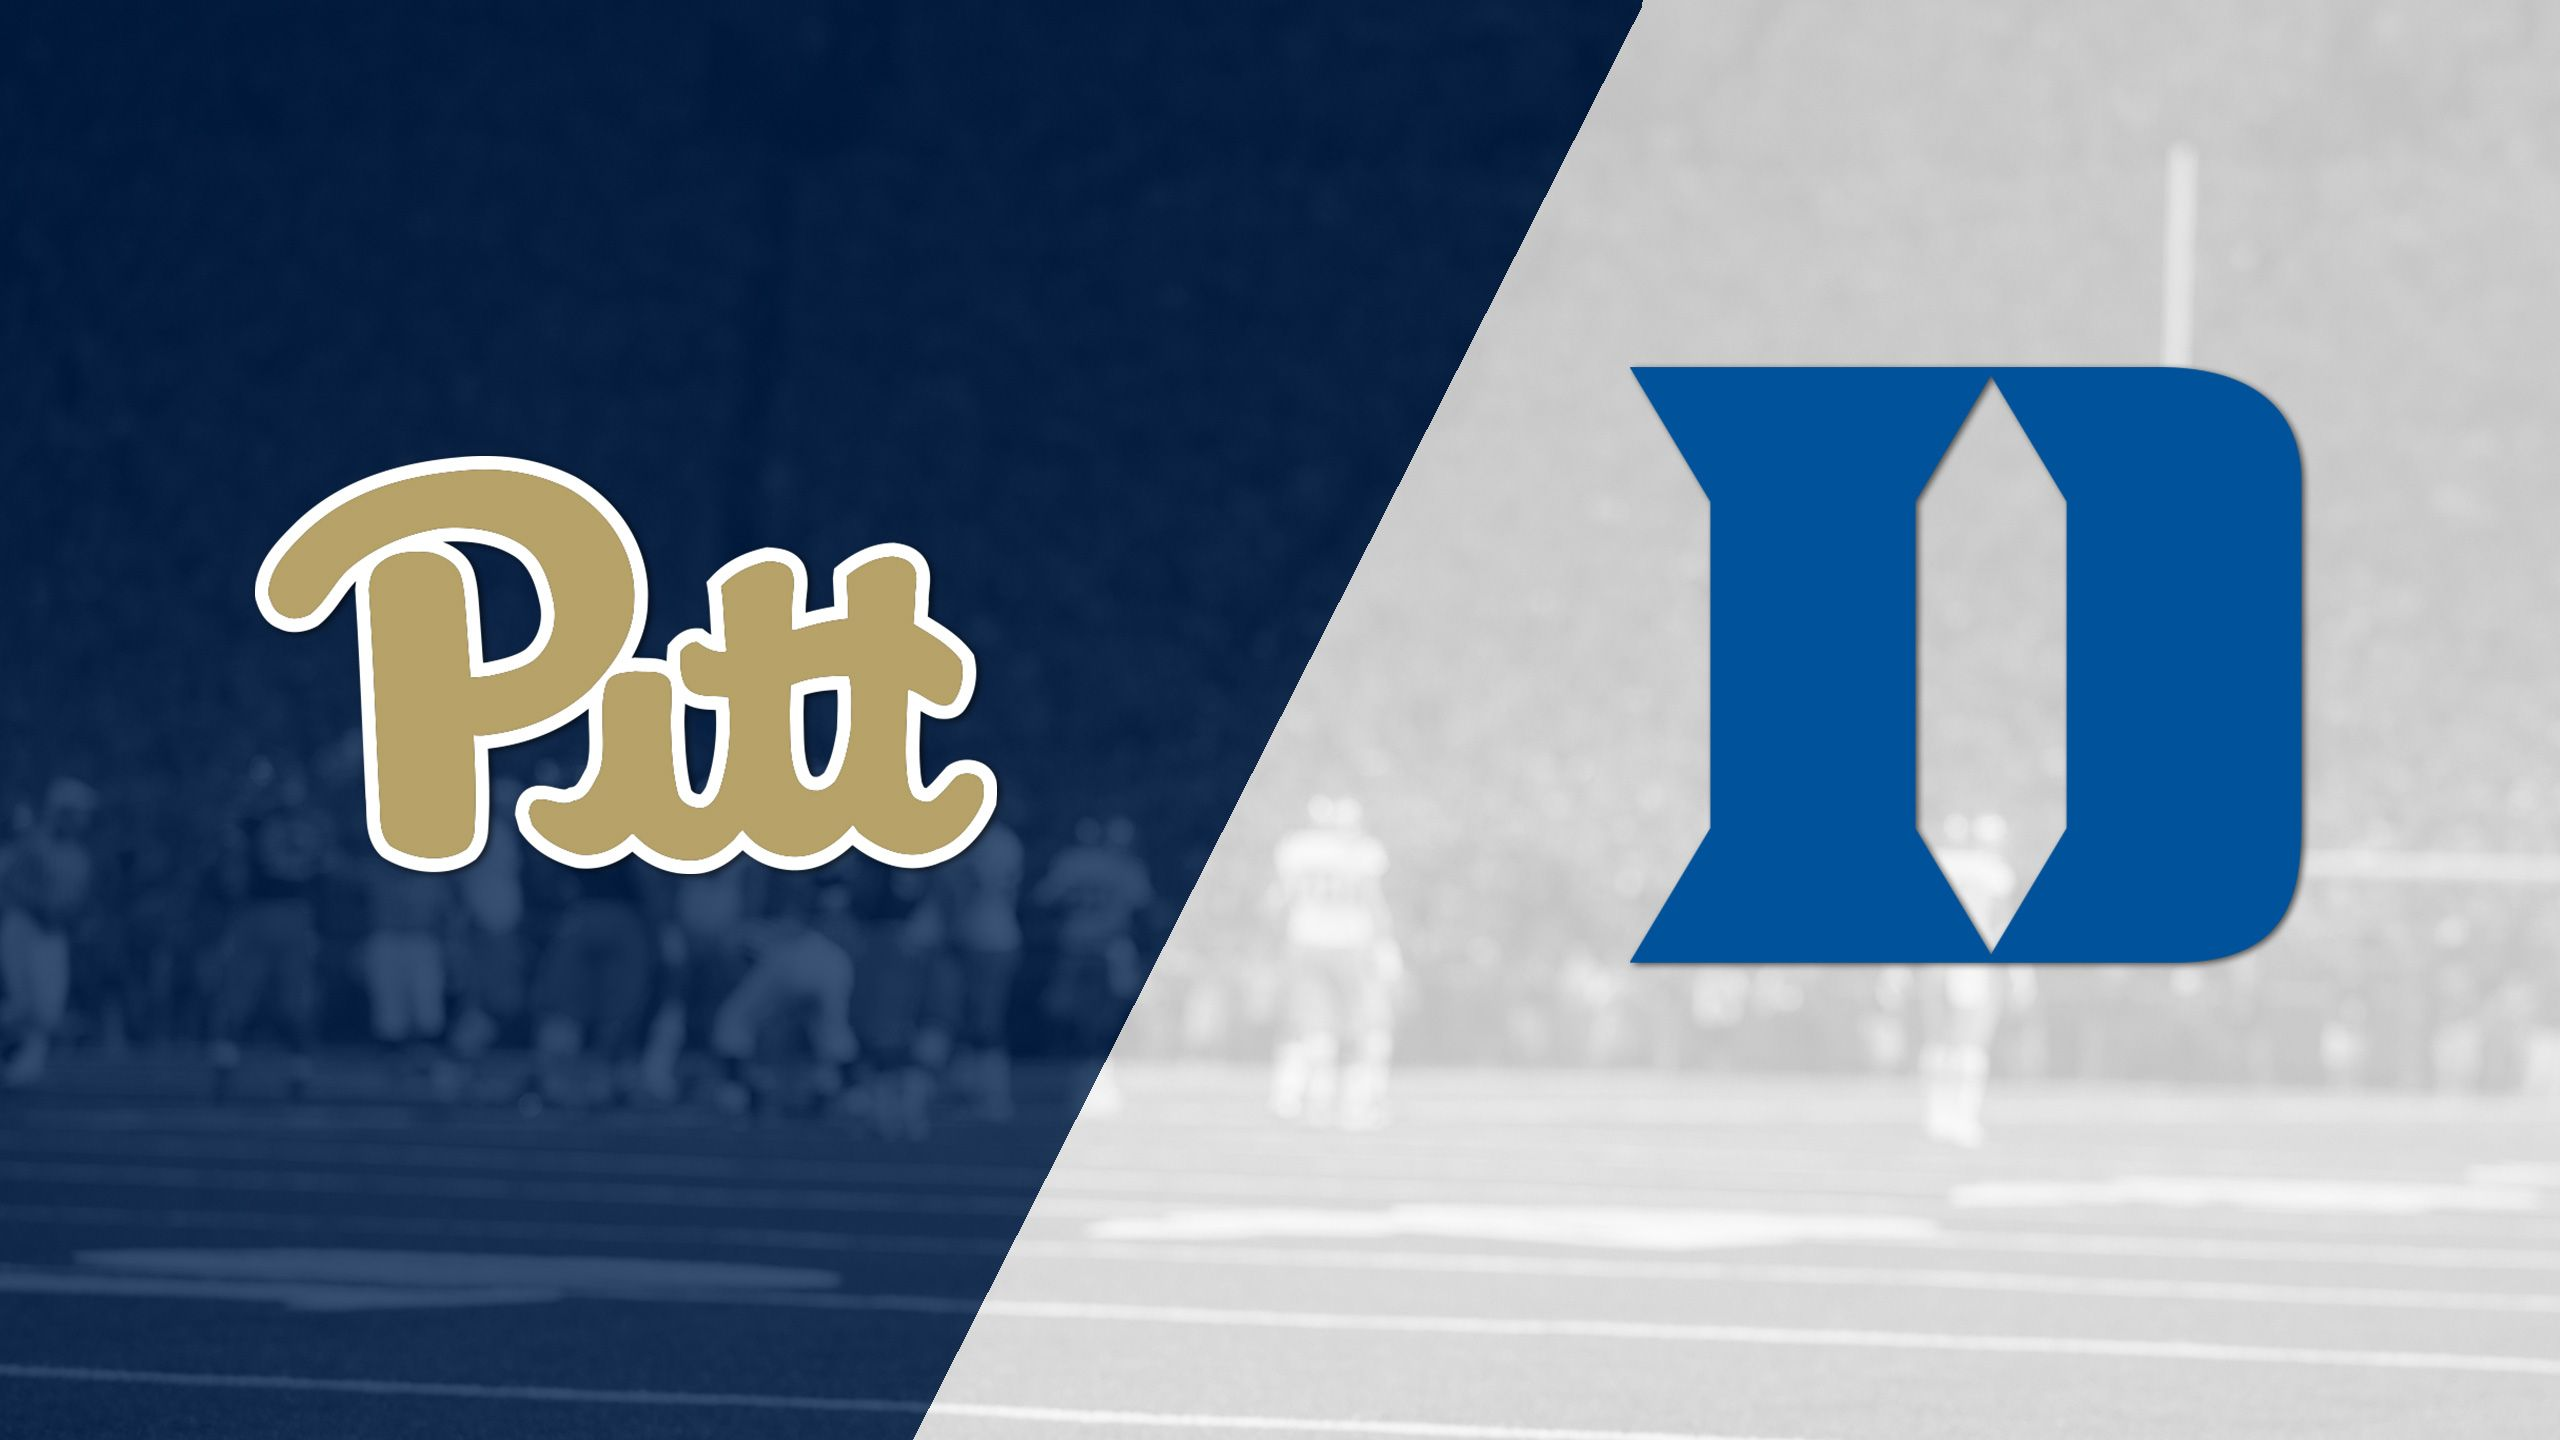 Pittsburgh vs. Duke (Football)